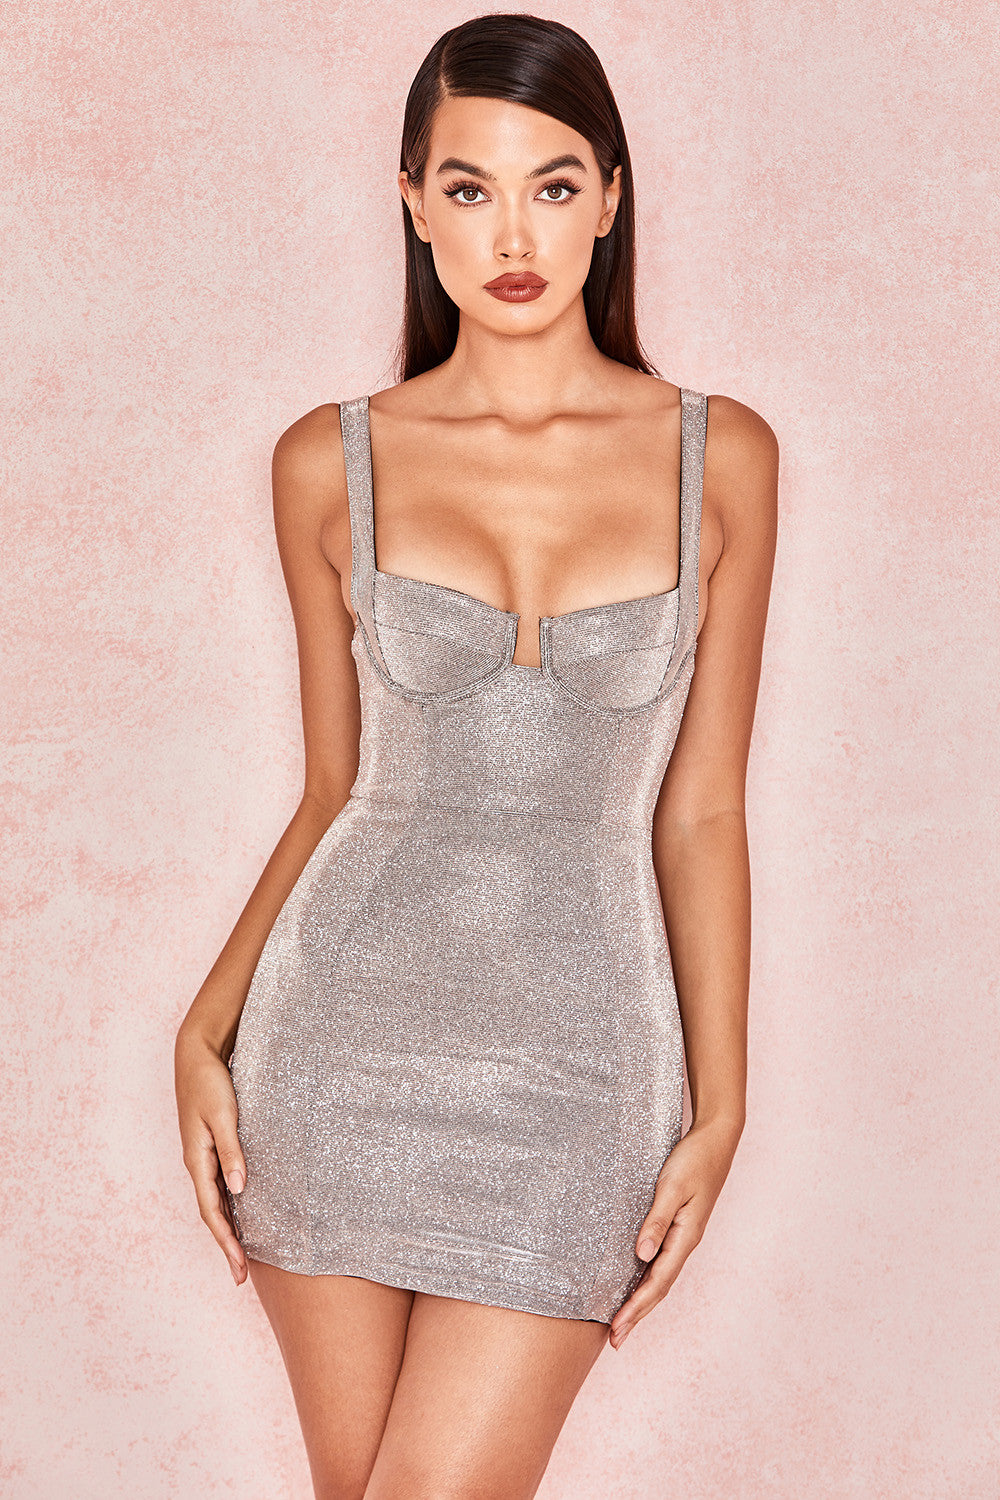 Secyij Silver Sparkly Mini Dress